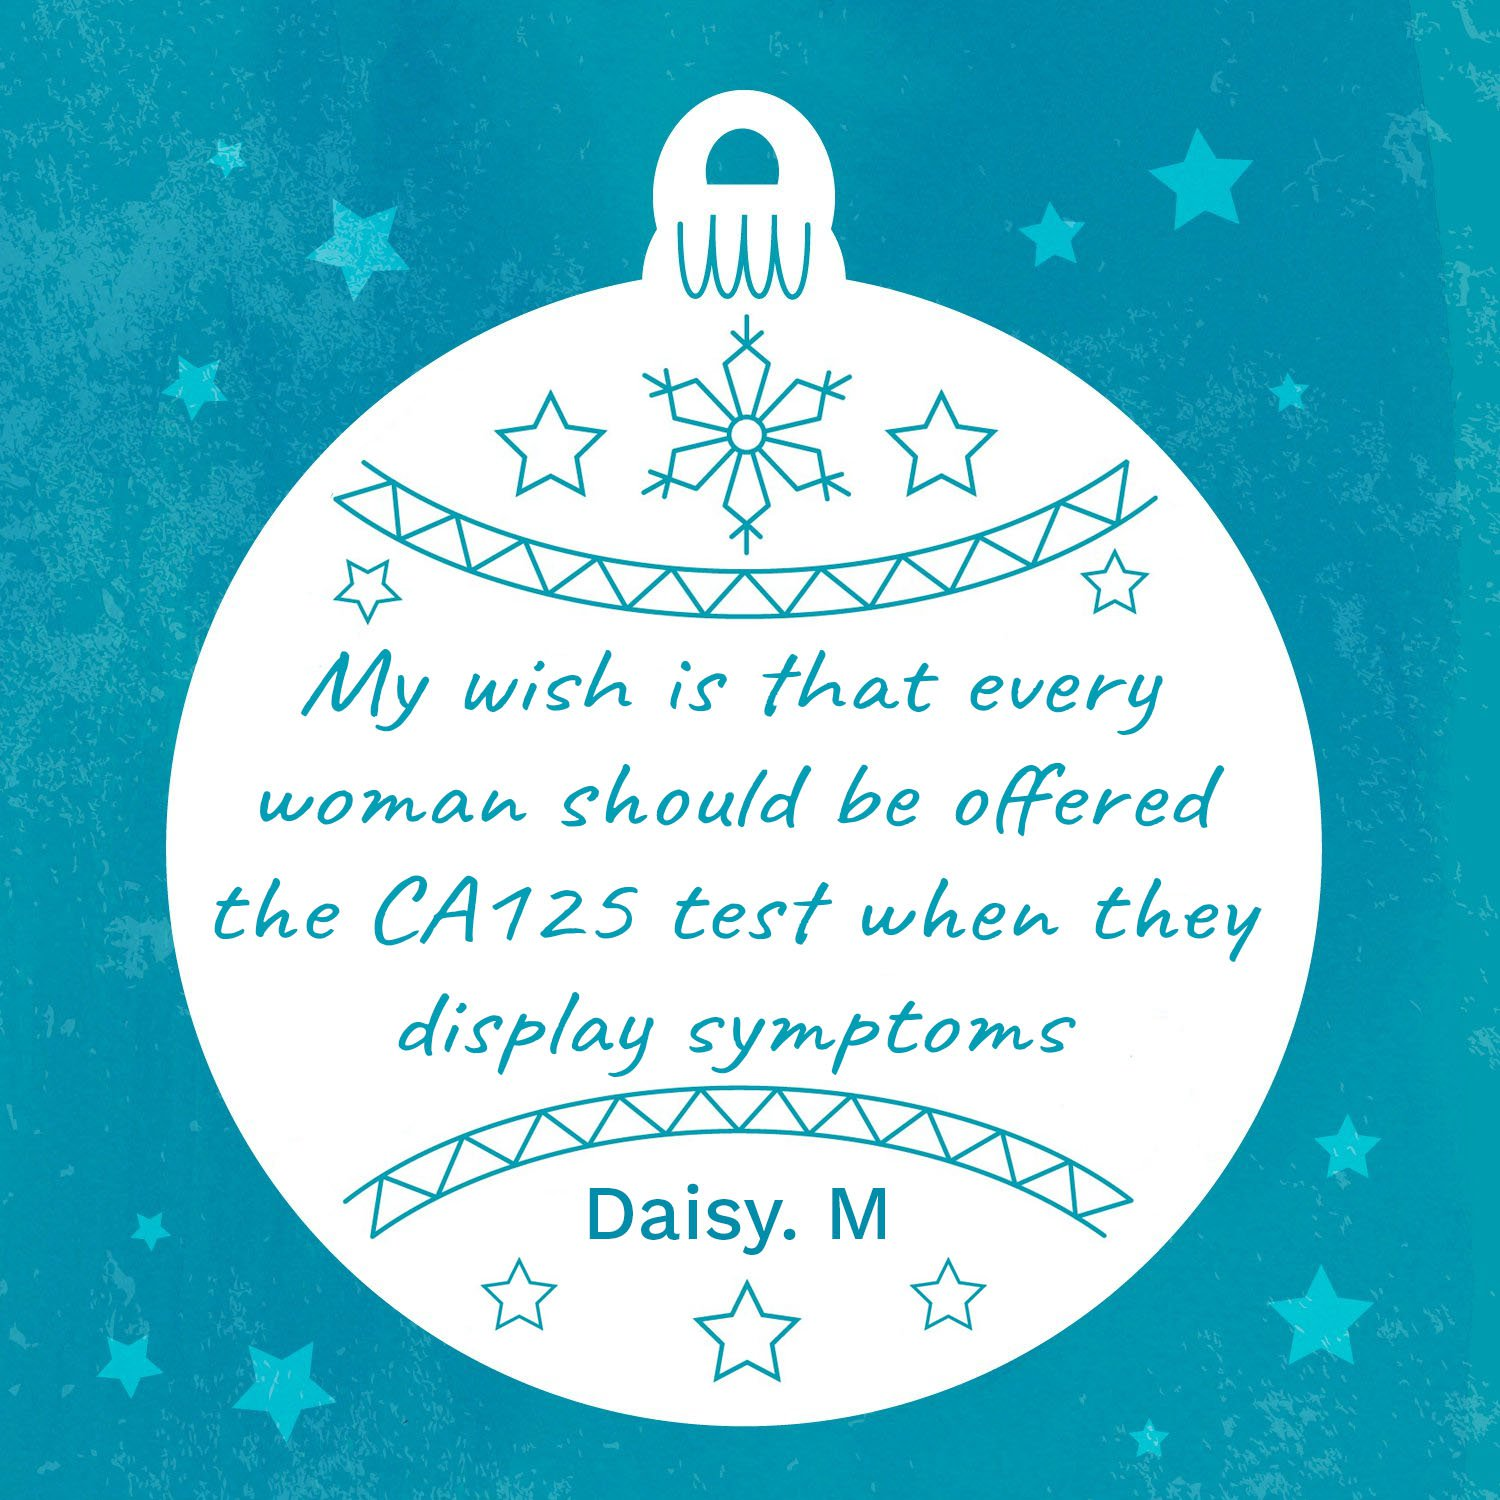 Daisy's Wish For Ovarian Cancer CA125 Test